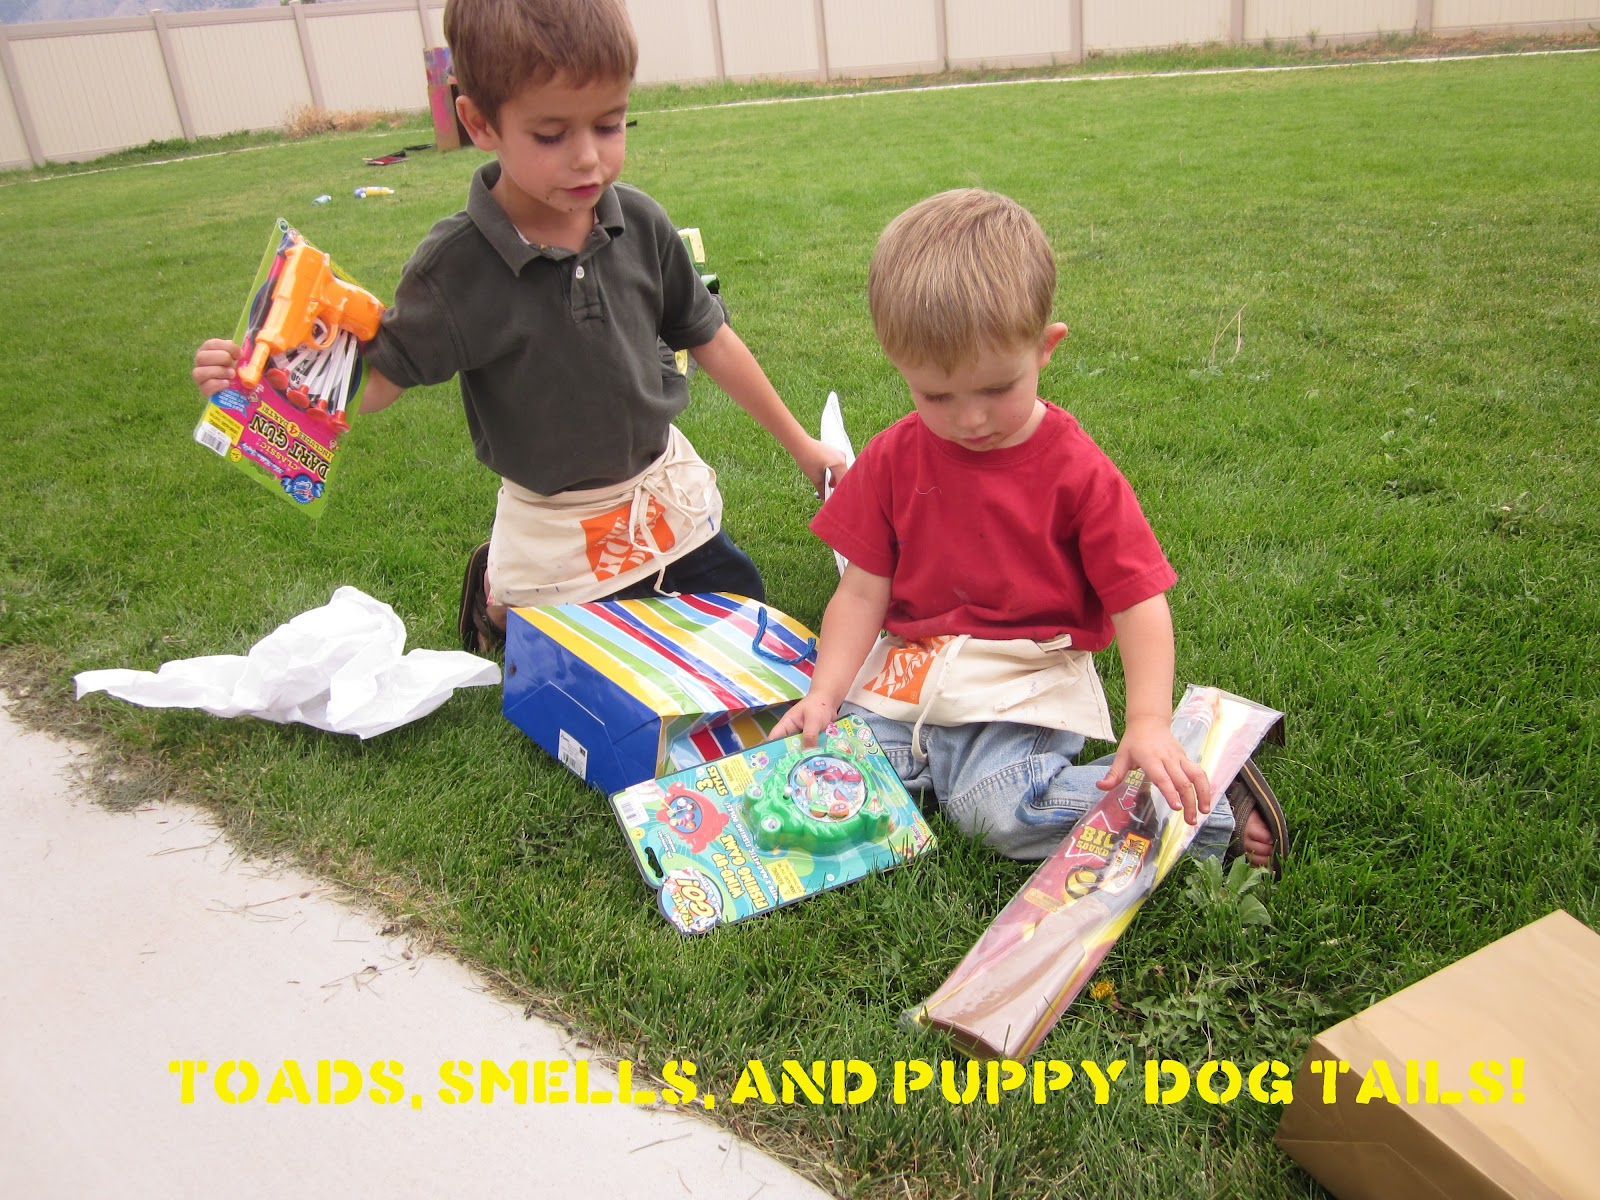 toads  smells  and puppy dog tails  construction birthday